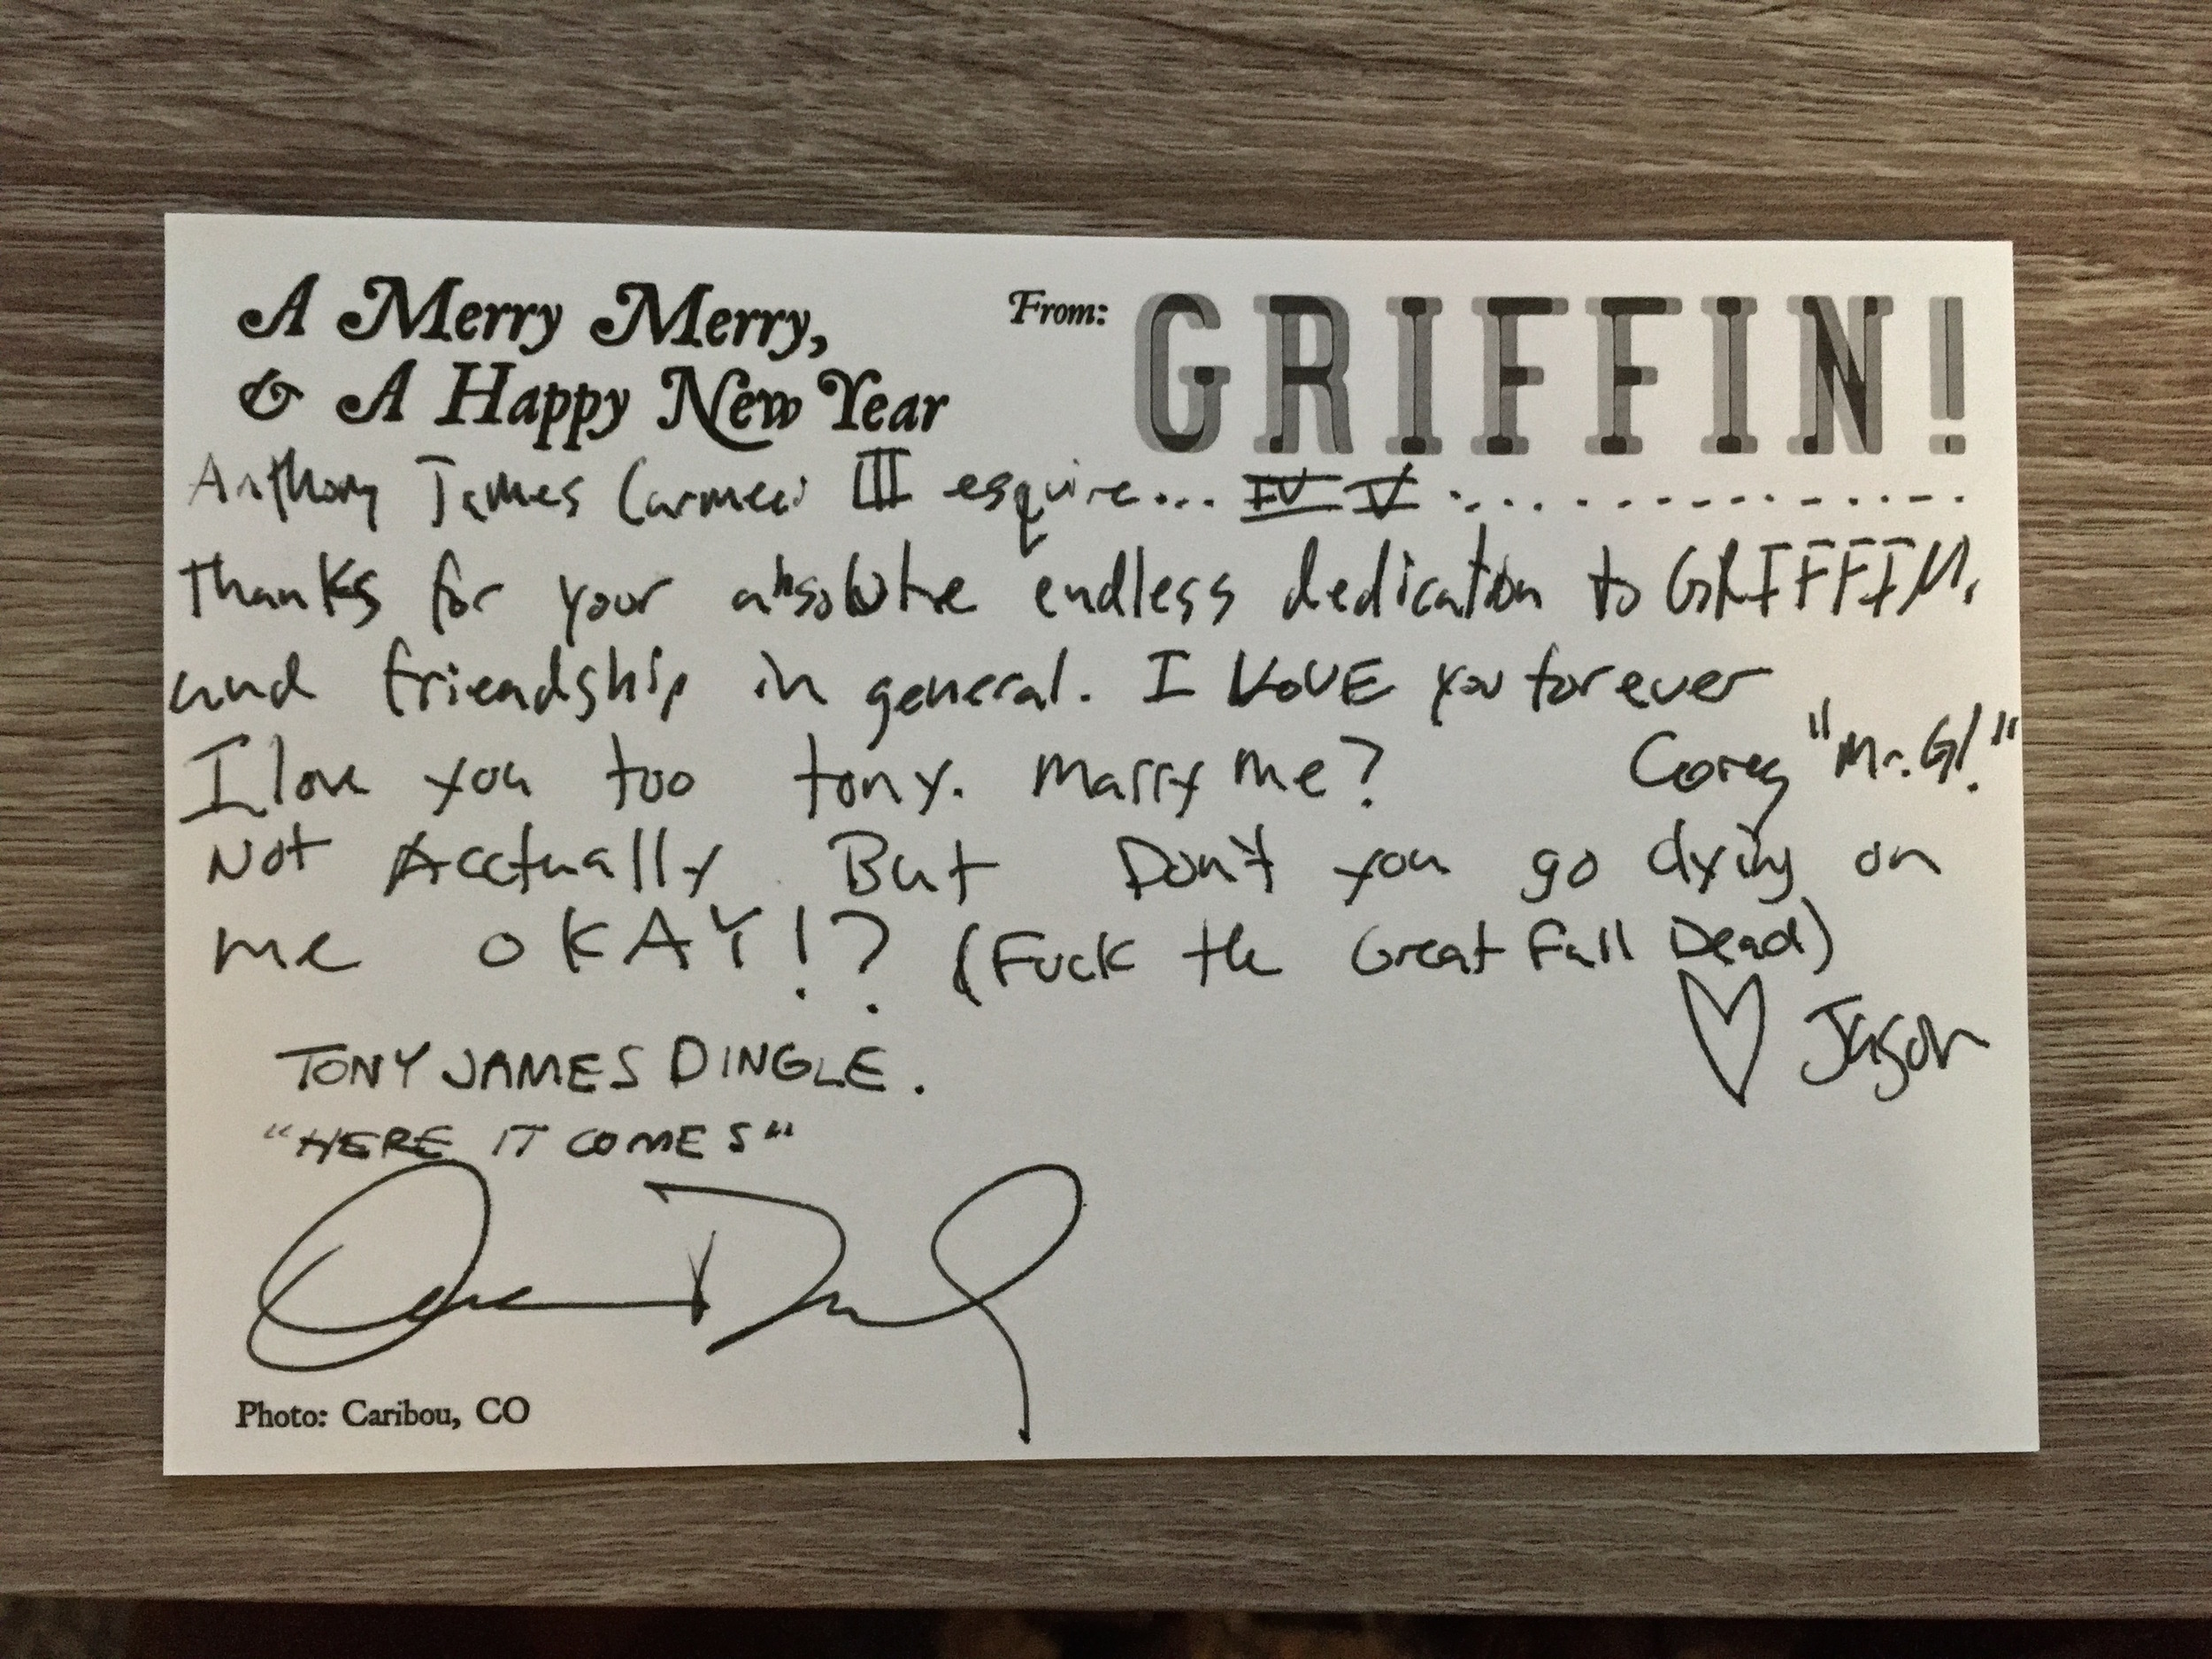 GRIFFIN! 2014 Holiday Card - My Personal Copy